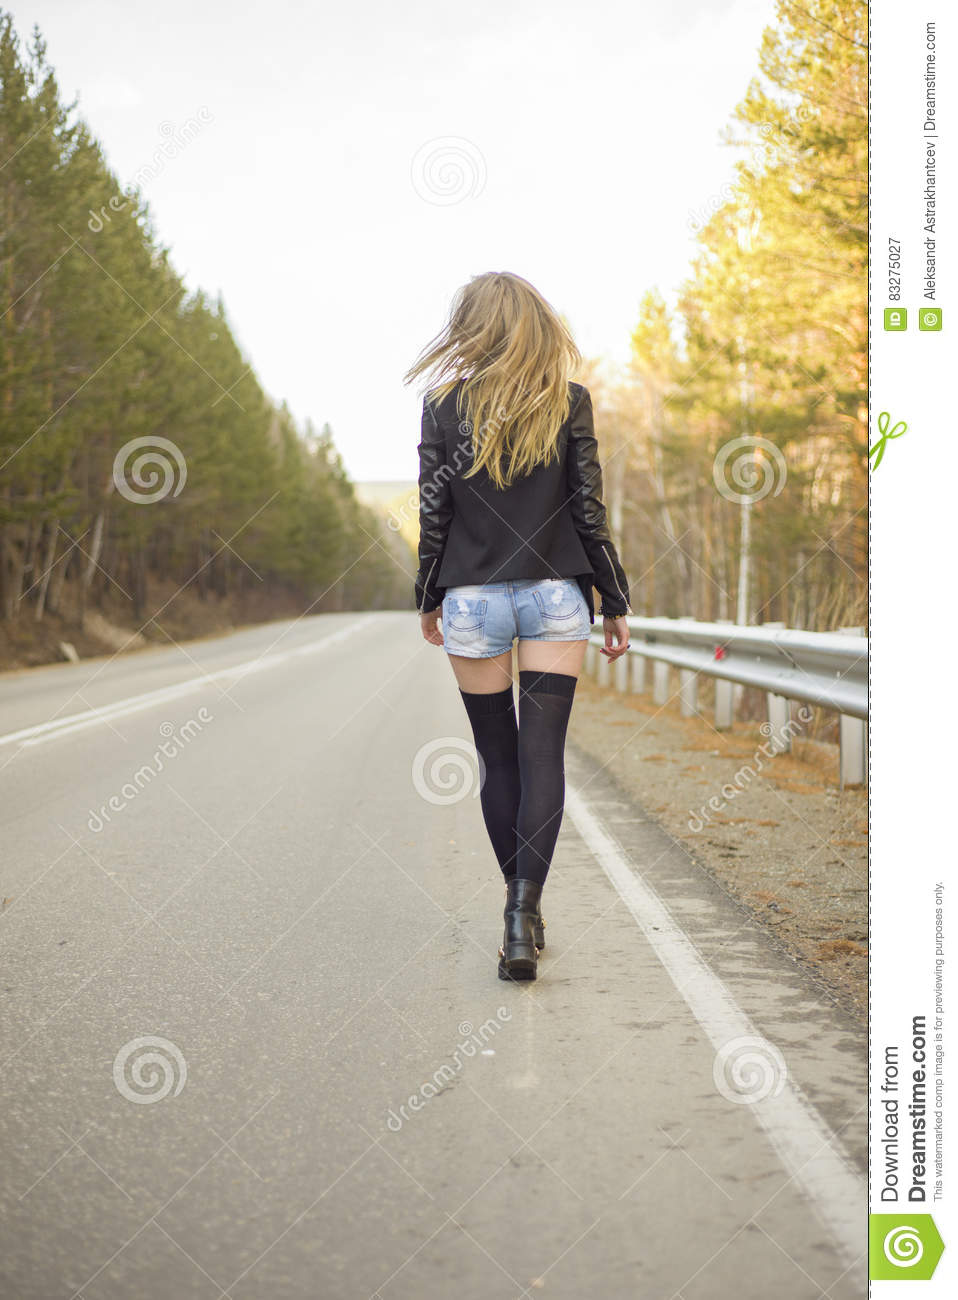 Young Woman Walking On Road In Forest Stock Image - Image